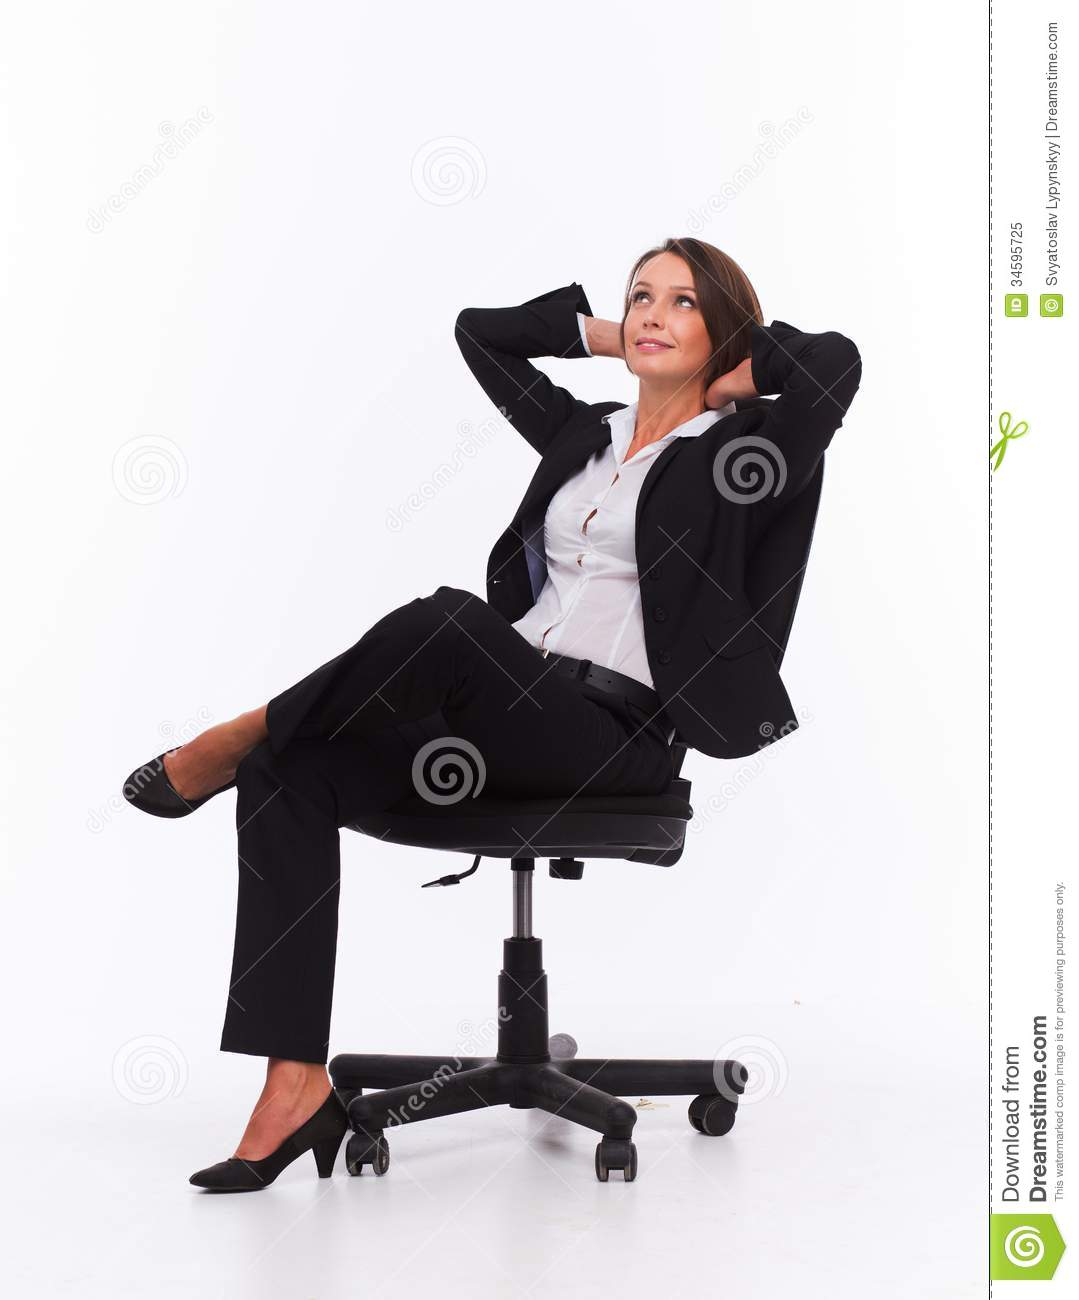 sit in your chair rattan armchair uk businesswoman on royalty free stock photo